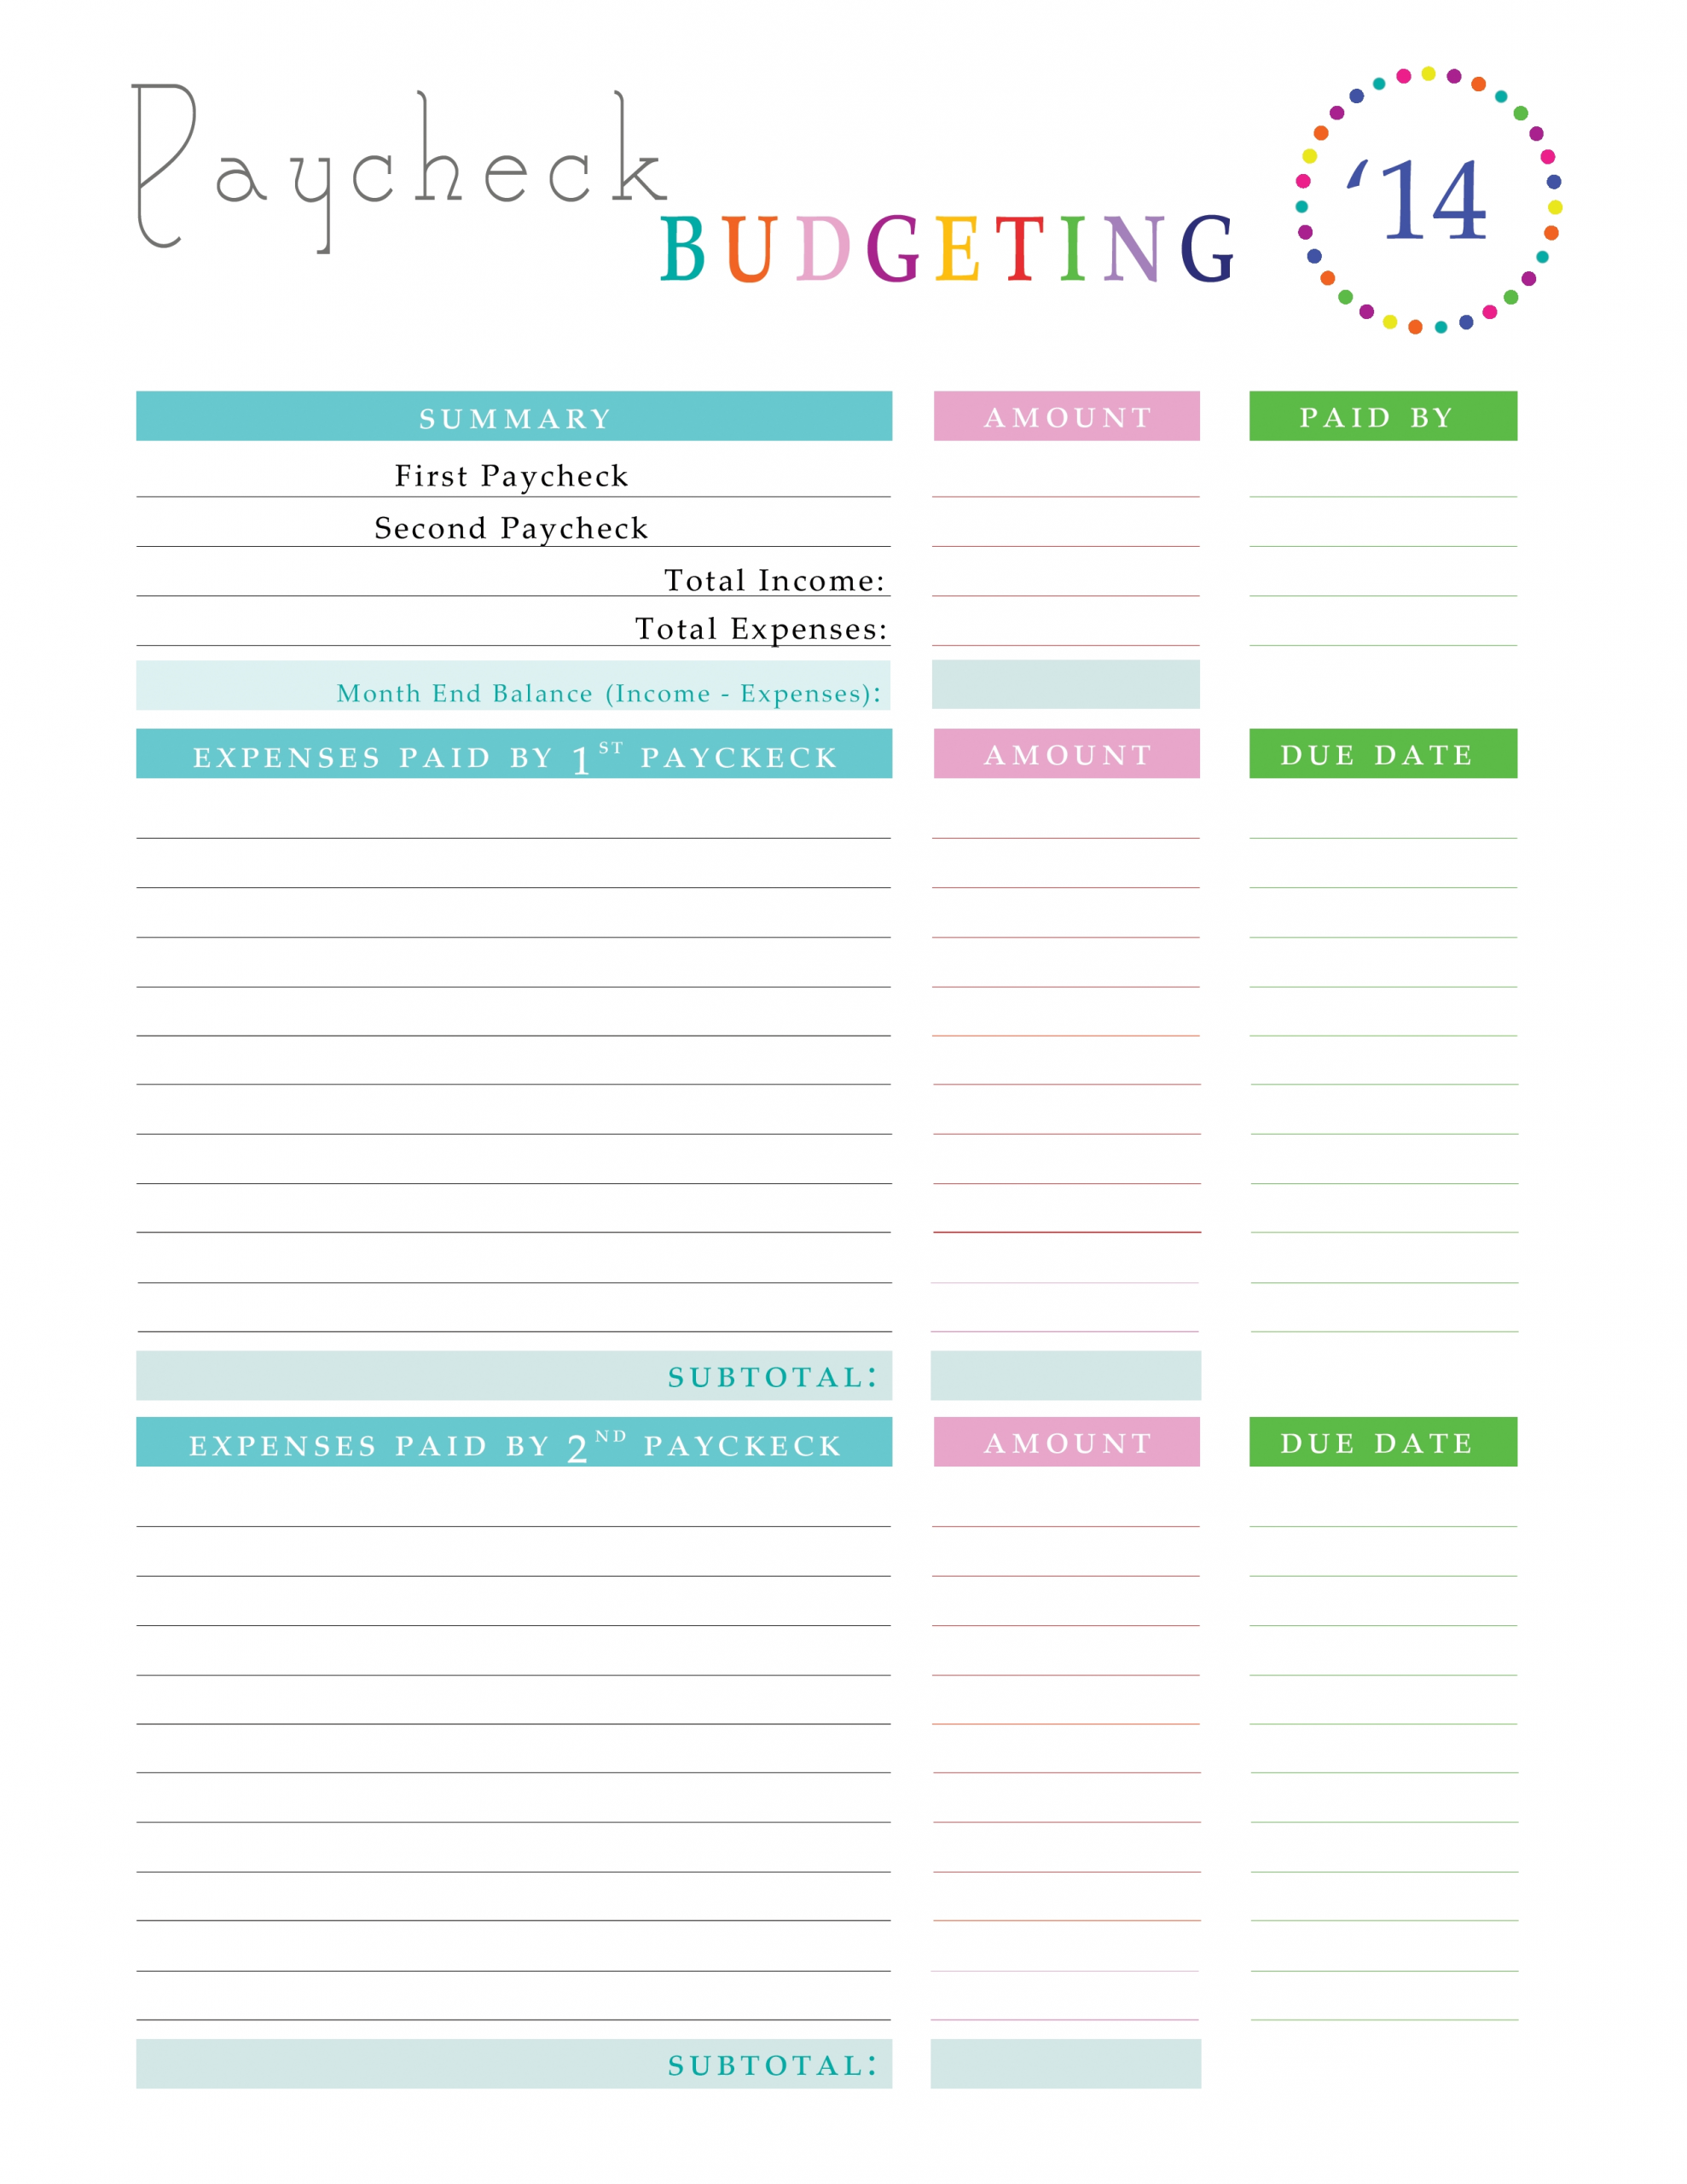 Pin On Checklists And Printables For Organizing Your House  Monthly Payment Worbook